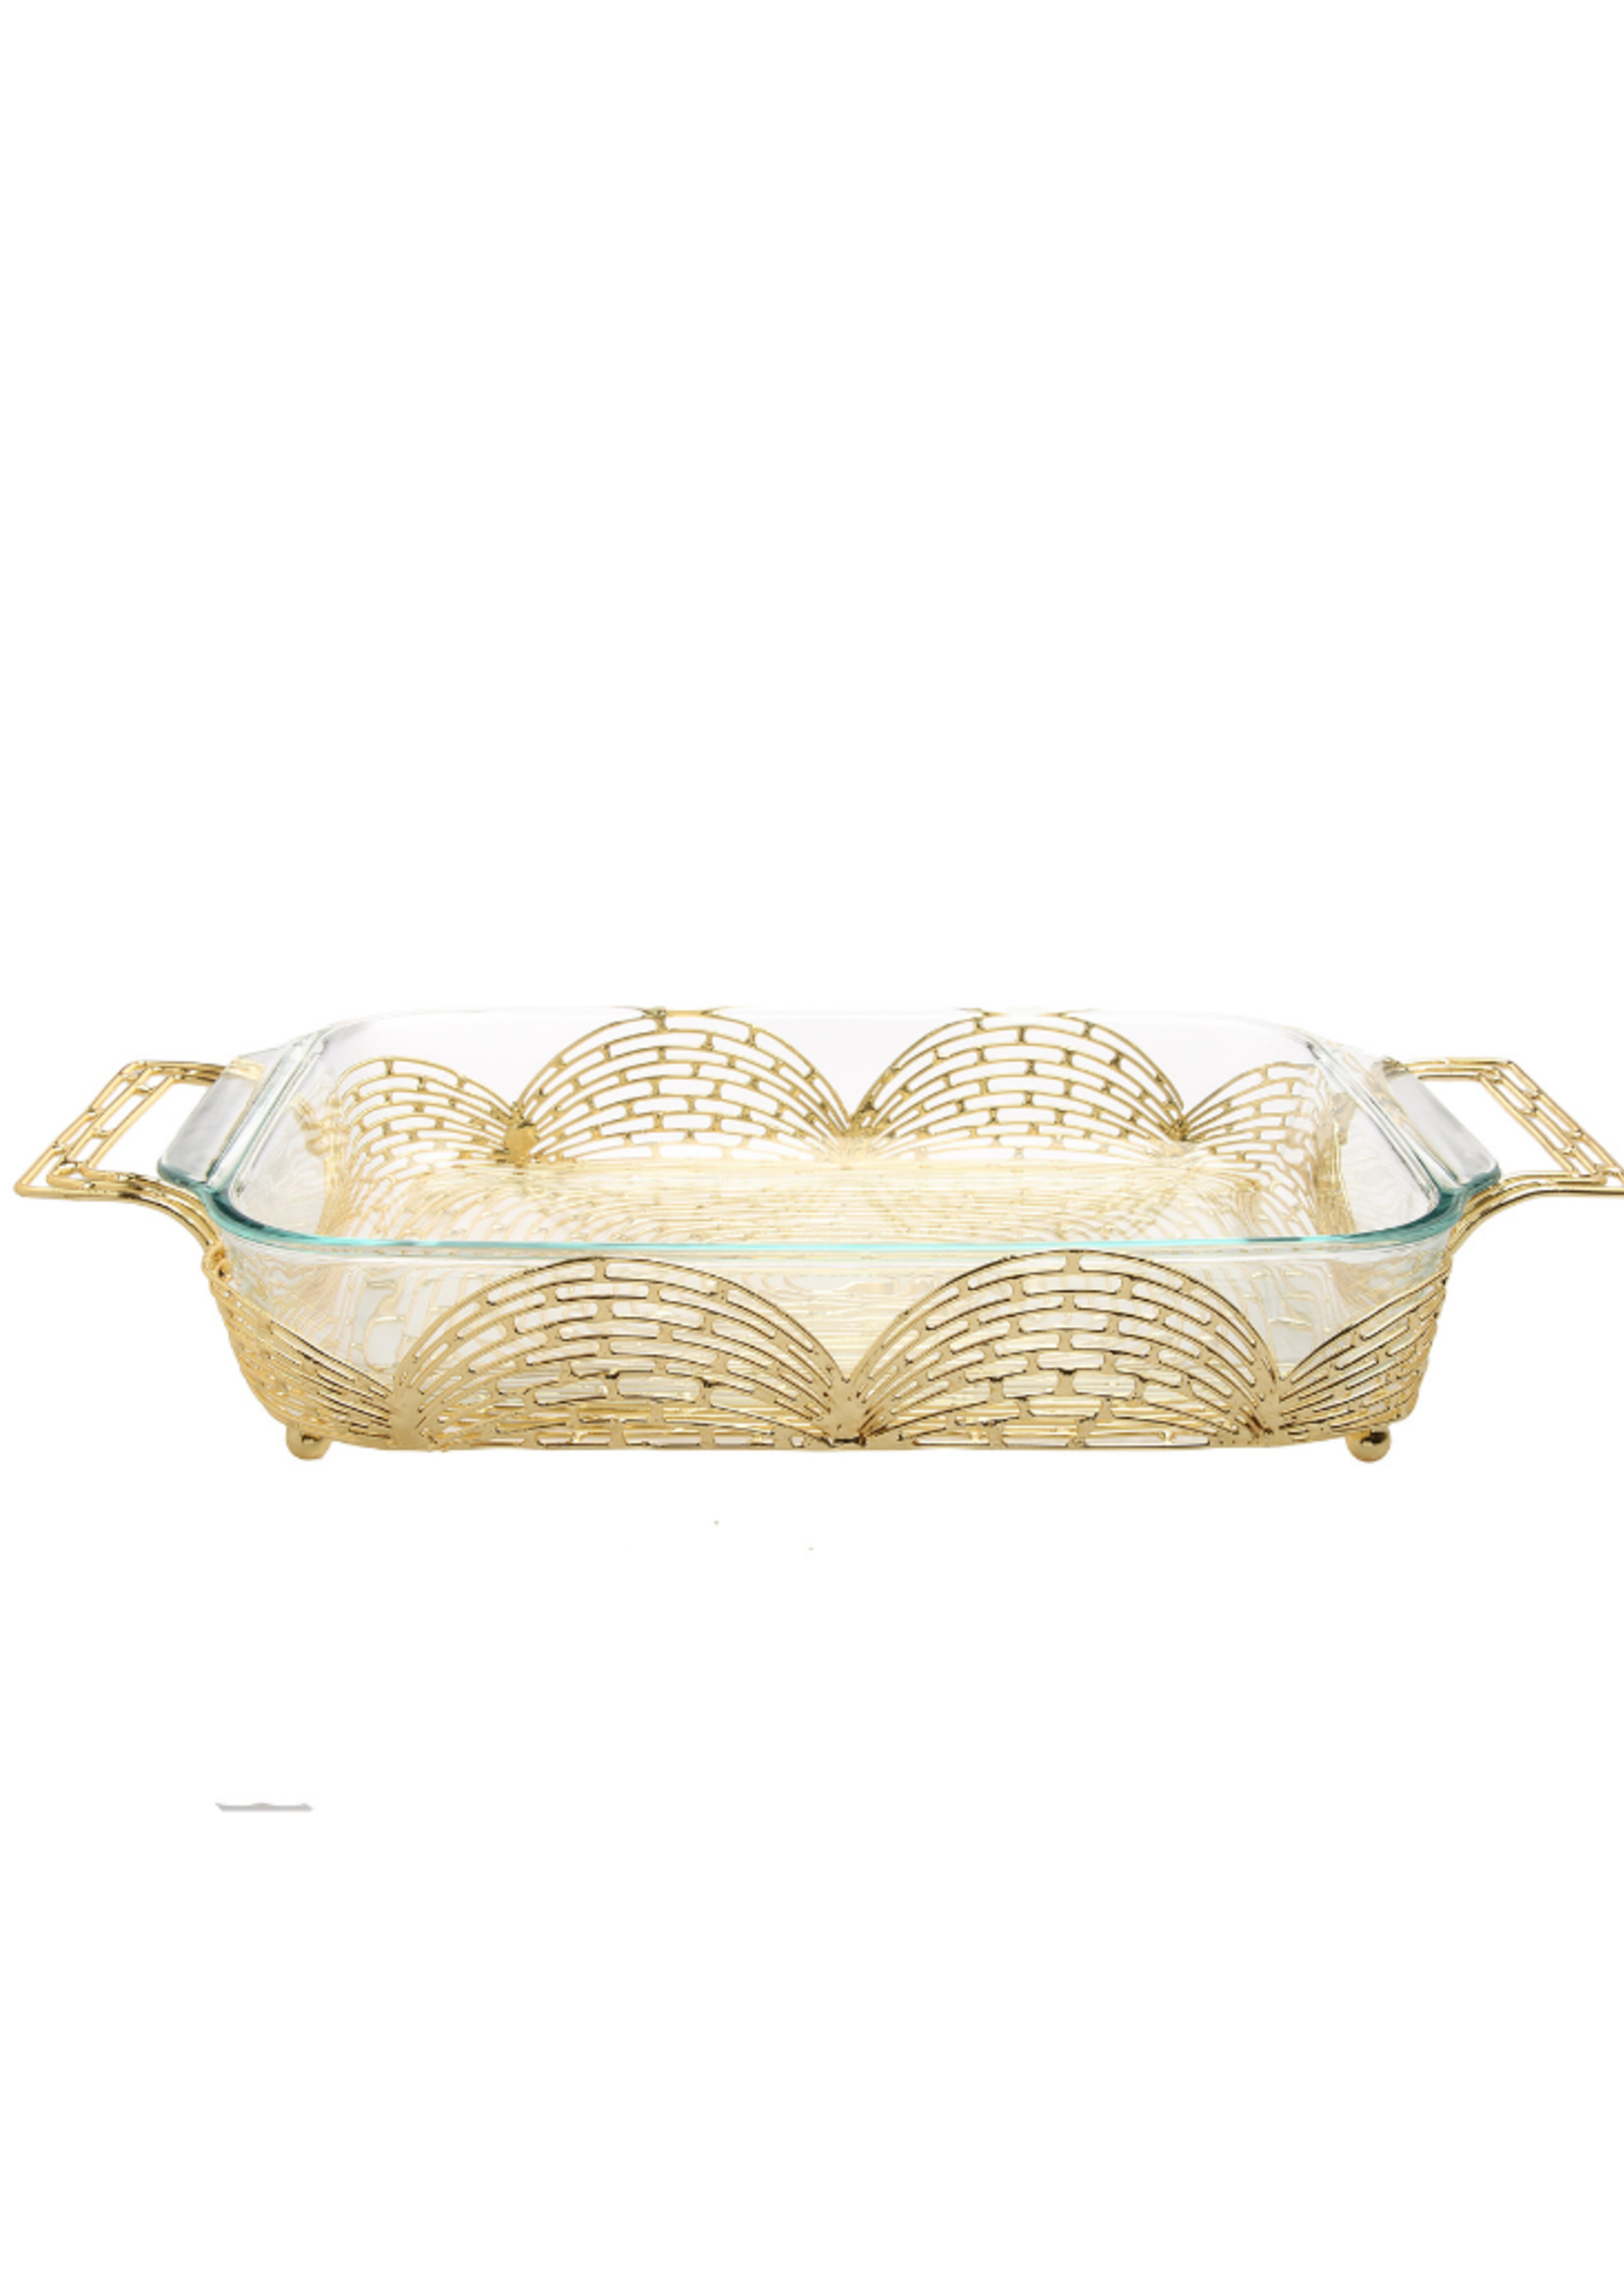 Art Deco Gold Pyrex Tray with Handles